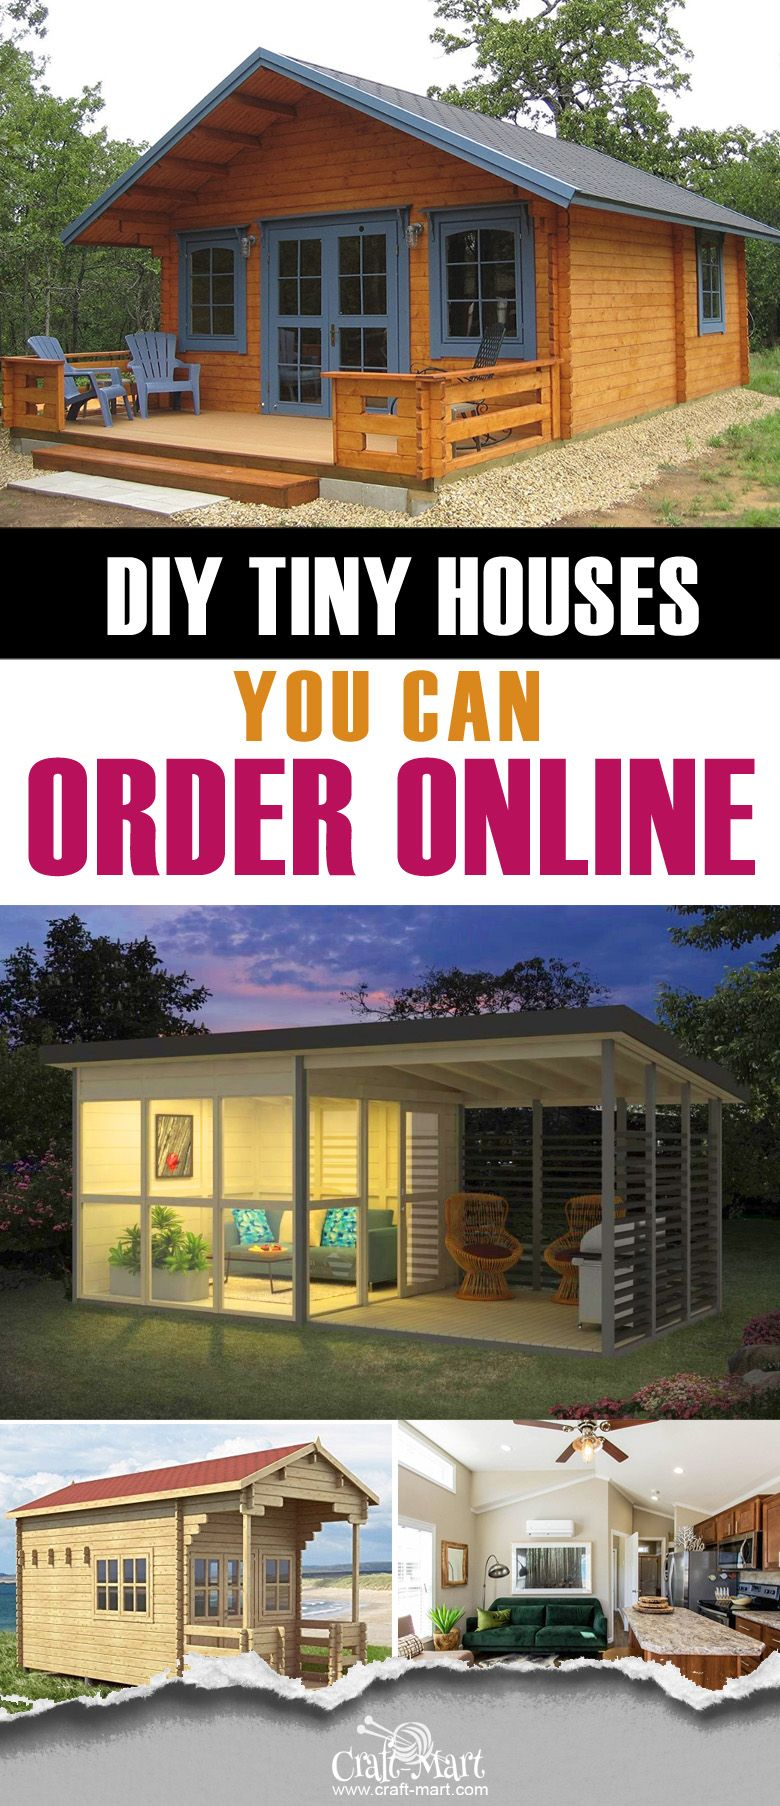 Prefab Tiny Houses You Can Order Online Right Now Craft Mart Pre Fab Tiny House Cheap Tiny House Tiny House Kits